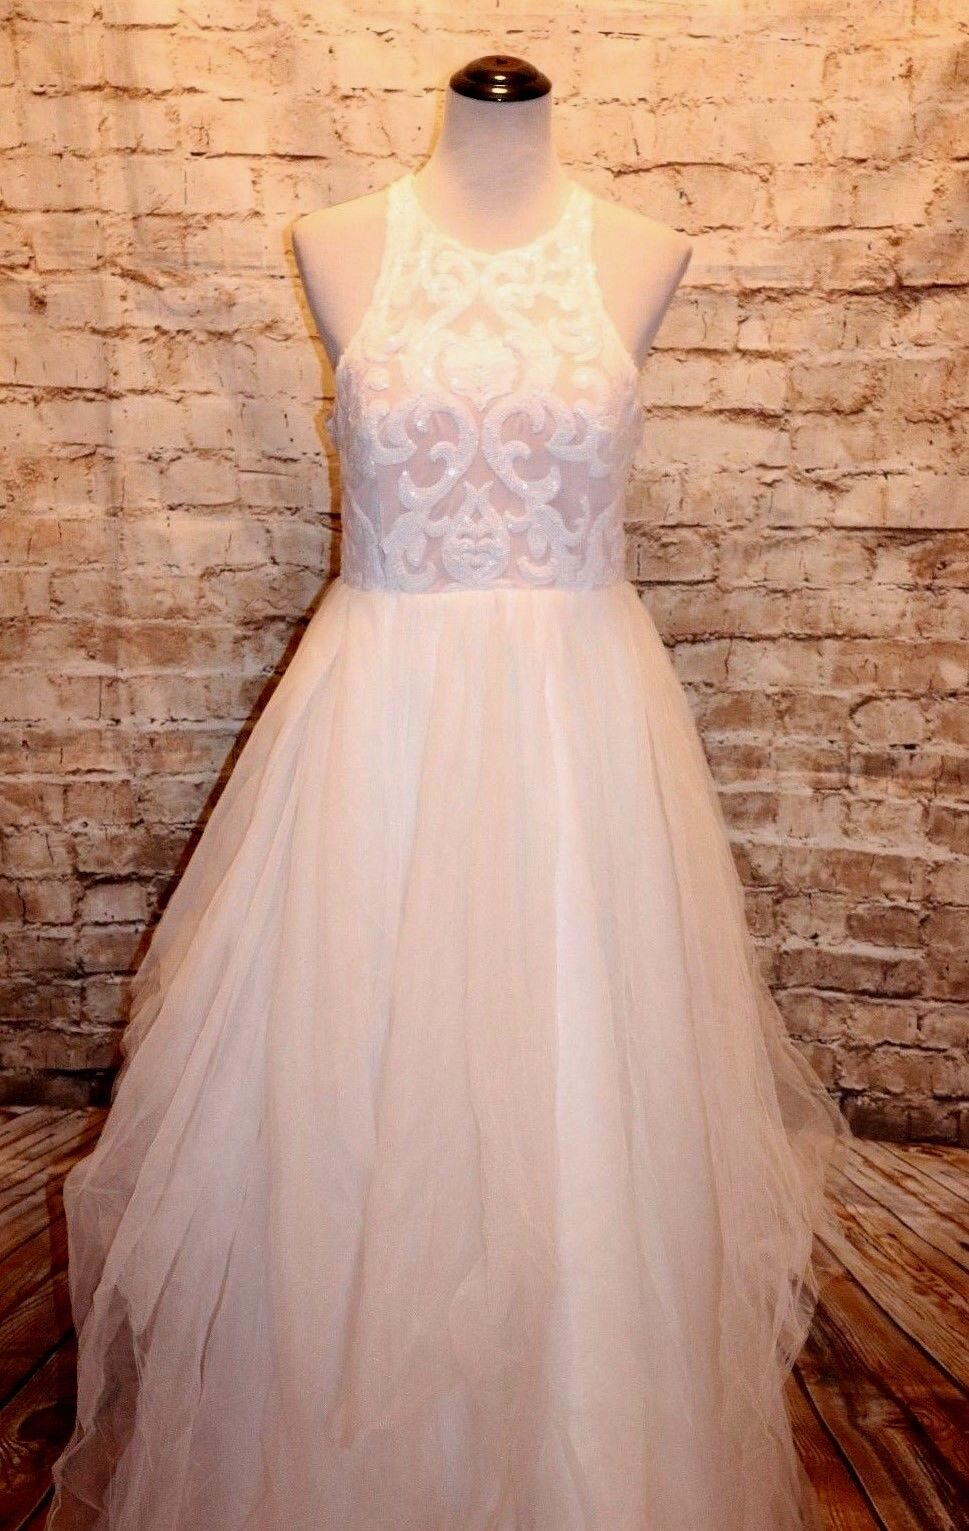 7f2535746a7 Modcloth Of Elope Wedding Dress NWT 4 Bariano sequin tulle Glimmer Maxi  ohmlrm14300-Dresses